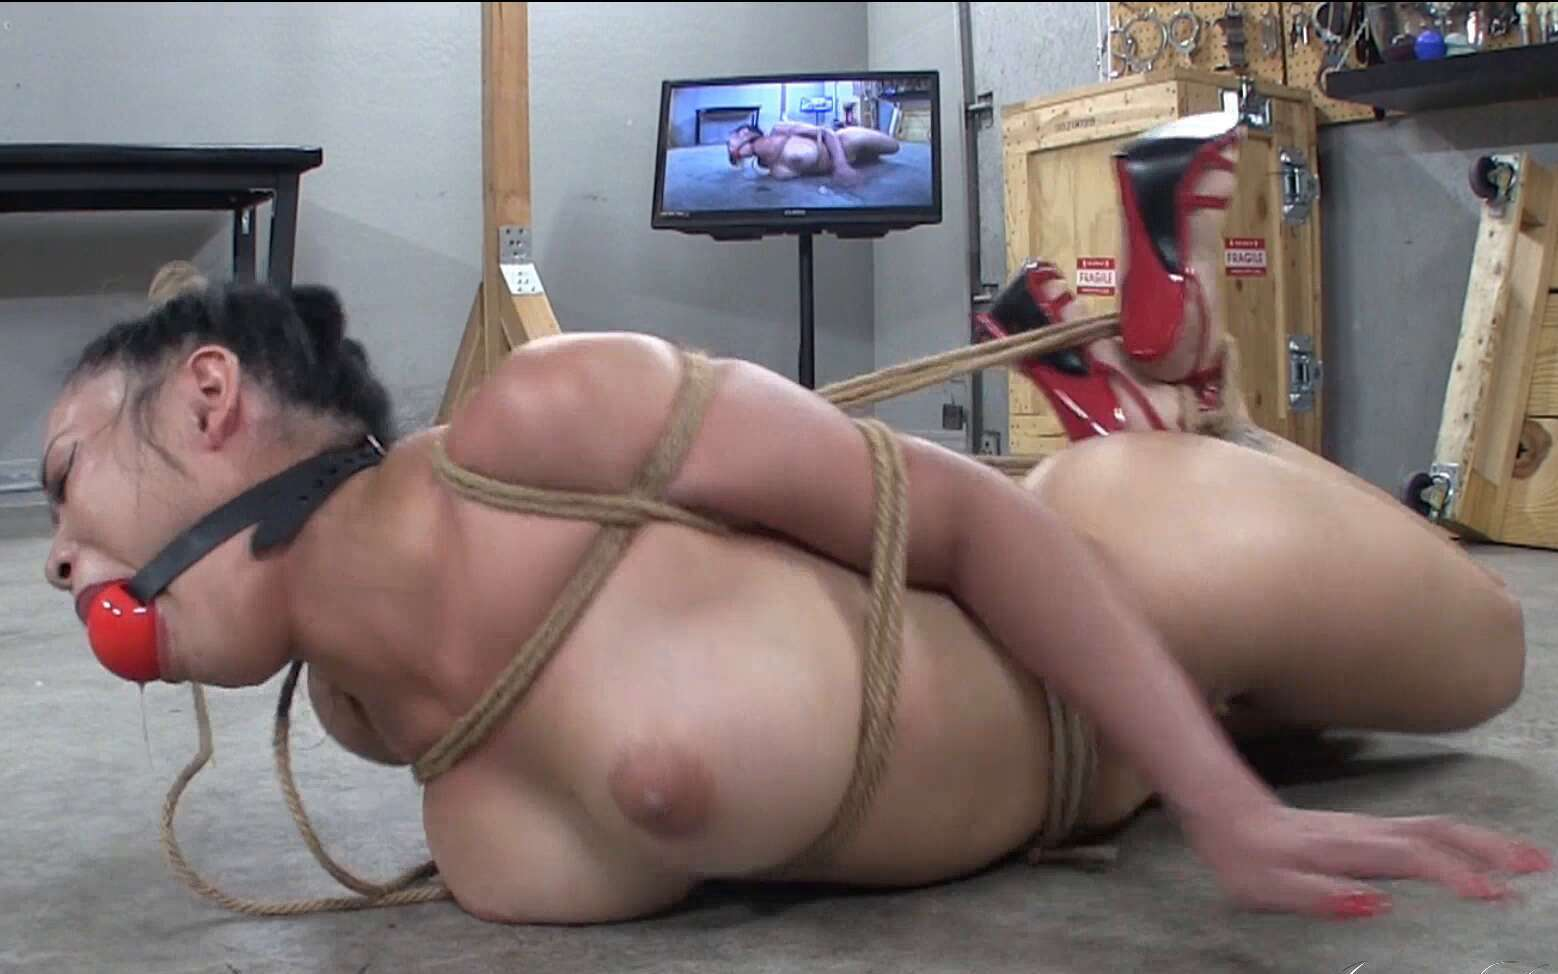 Asianastarr - Dirty Girl Hogtied Part 1 of 2 - Drooling - Naked, crotch roped and gagged with my ponytail pulled back